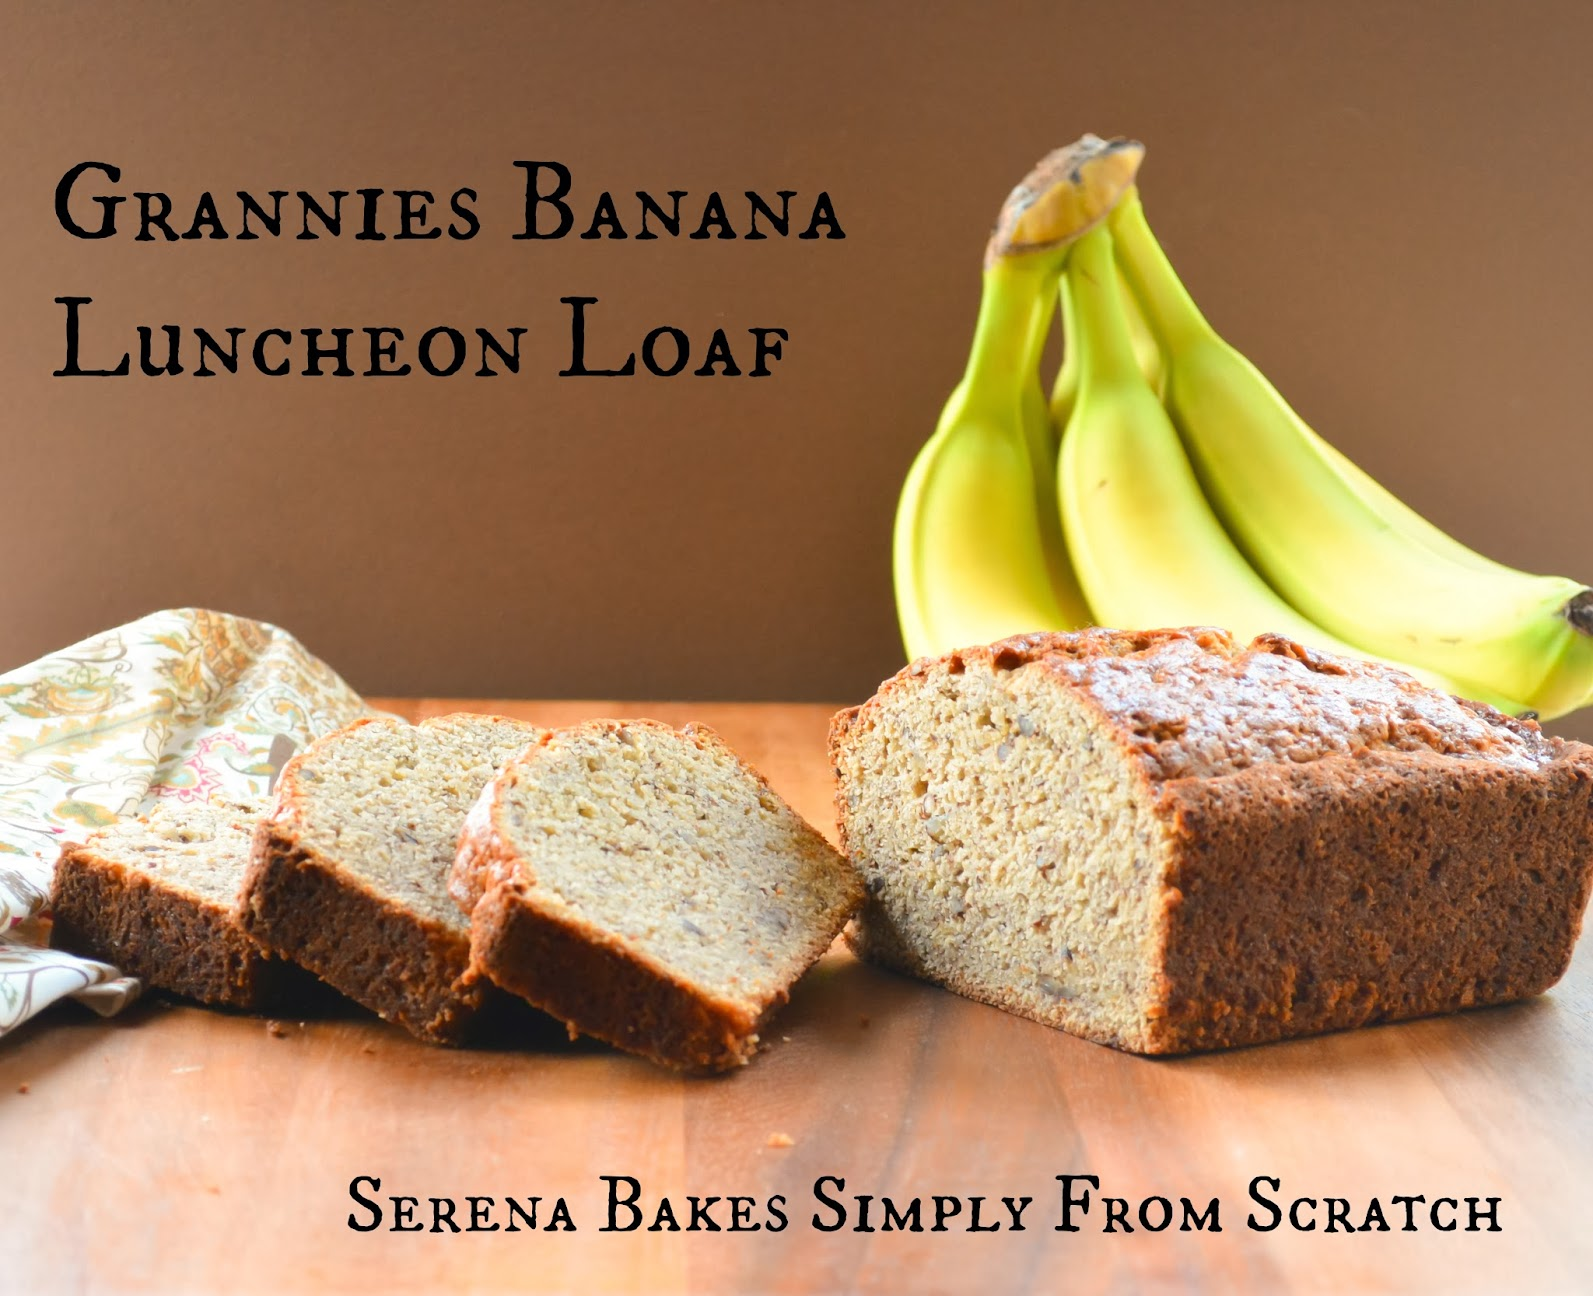 Grannies-Banana-Luncheon-Loaf-Slice.jpg